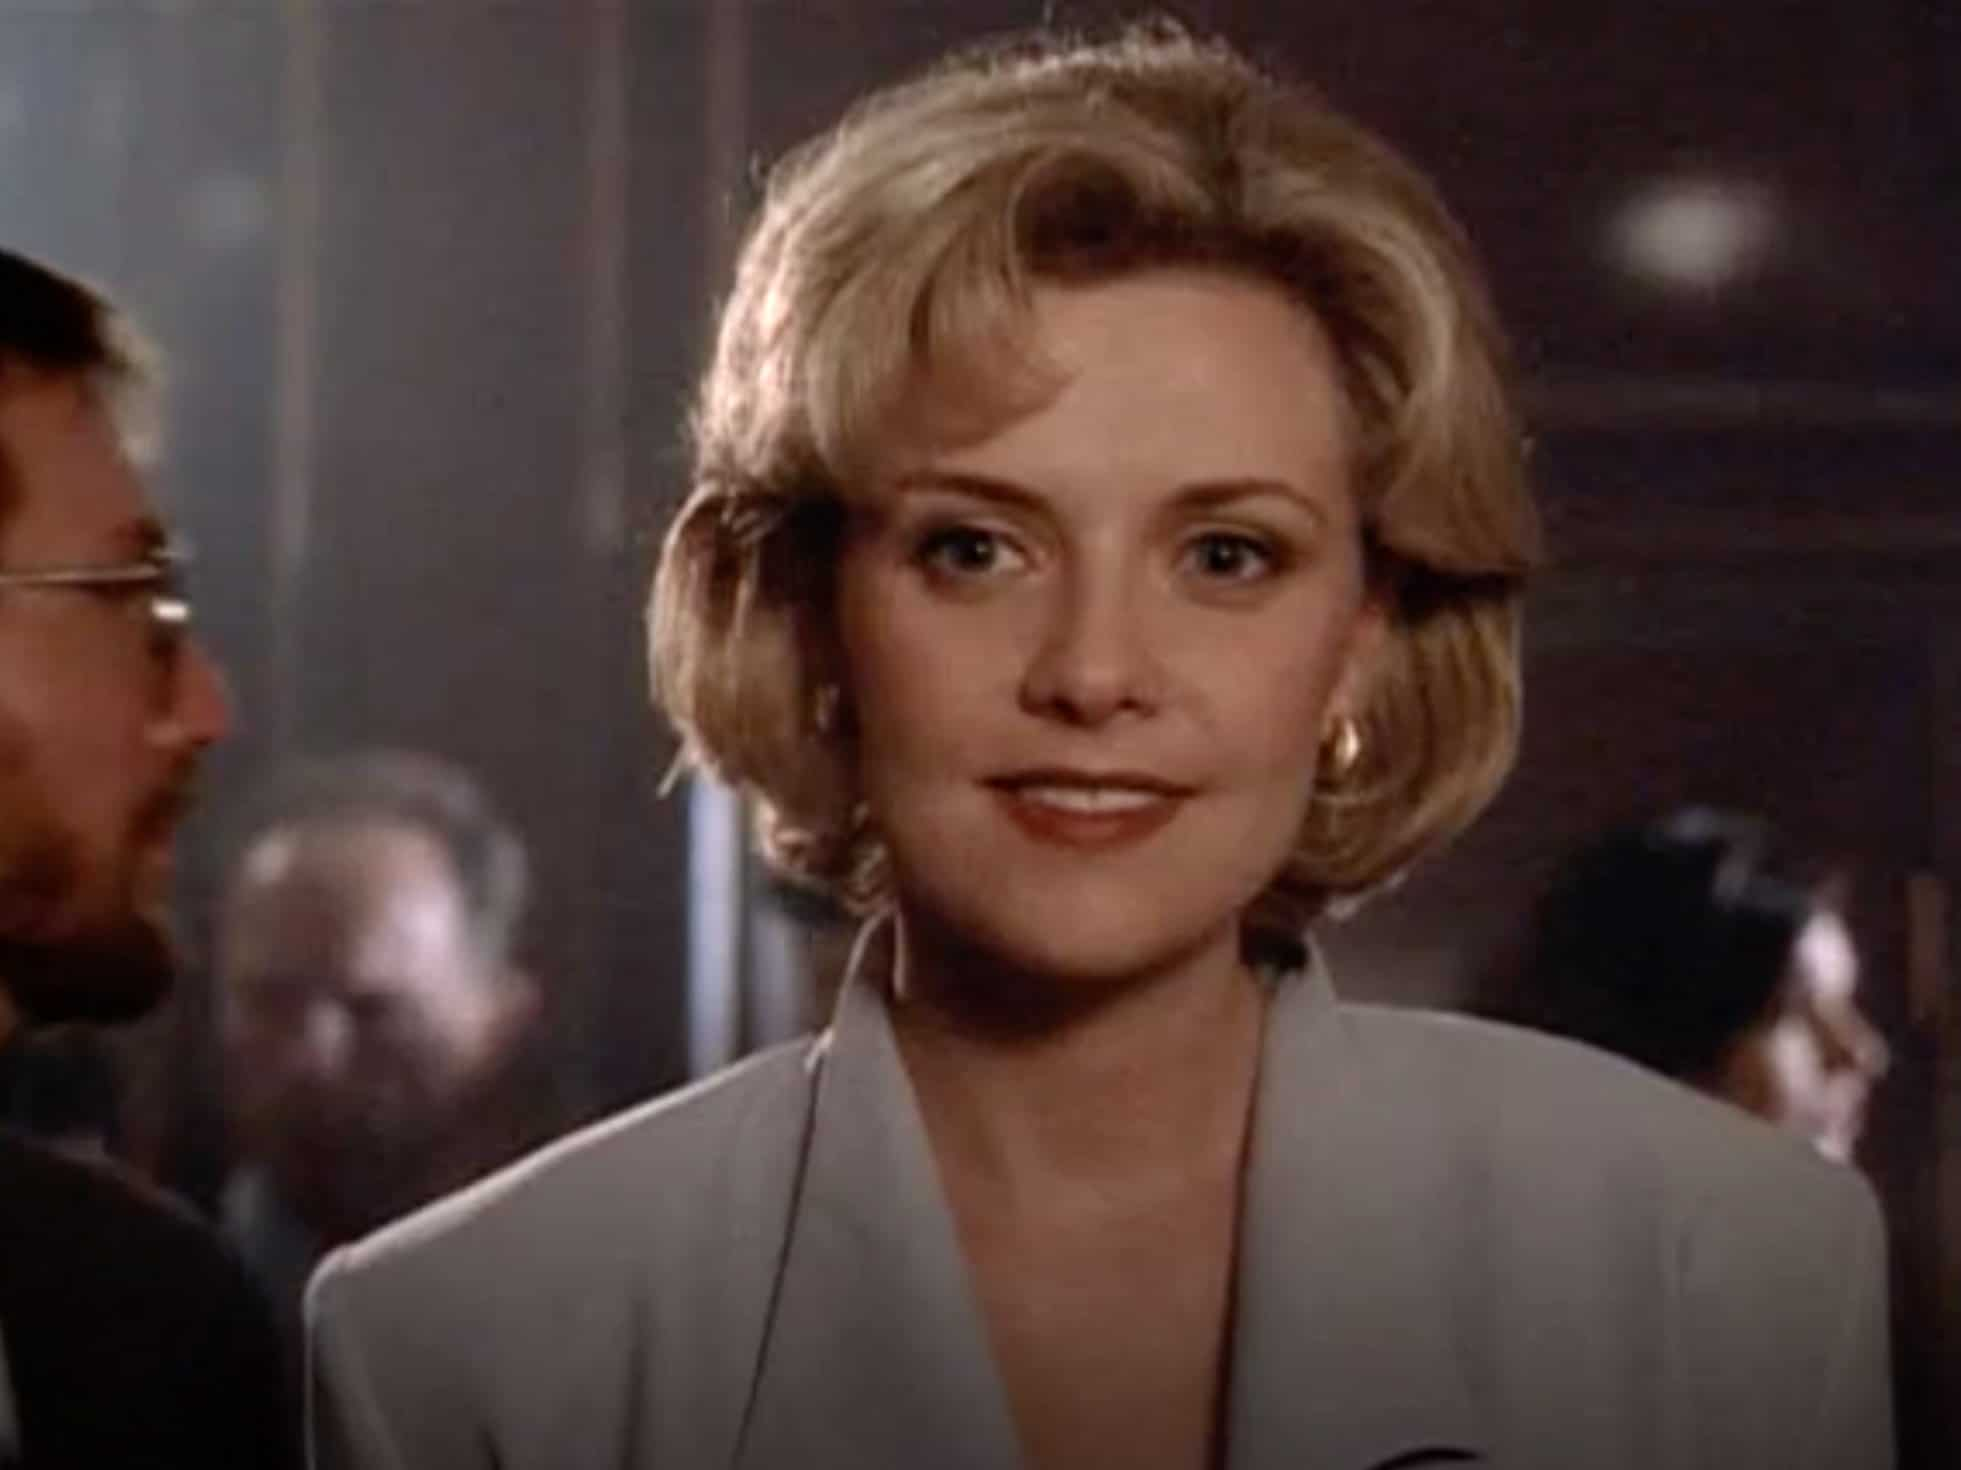 Amanda Tapping X Files amanda tapping in the x-files